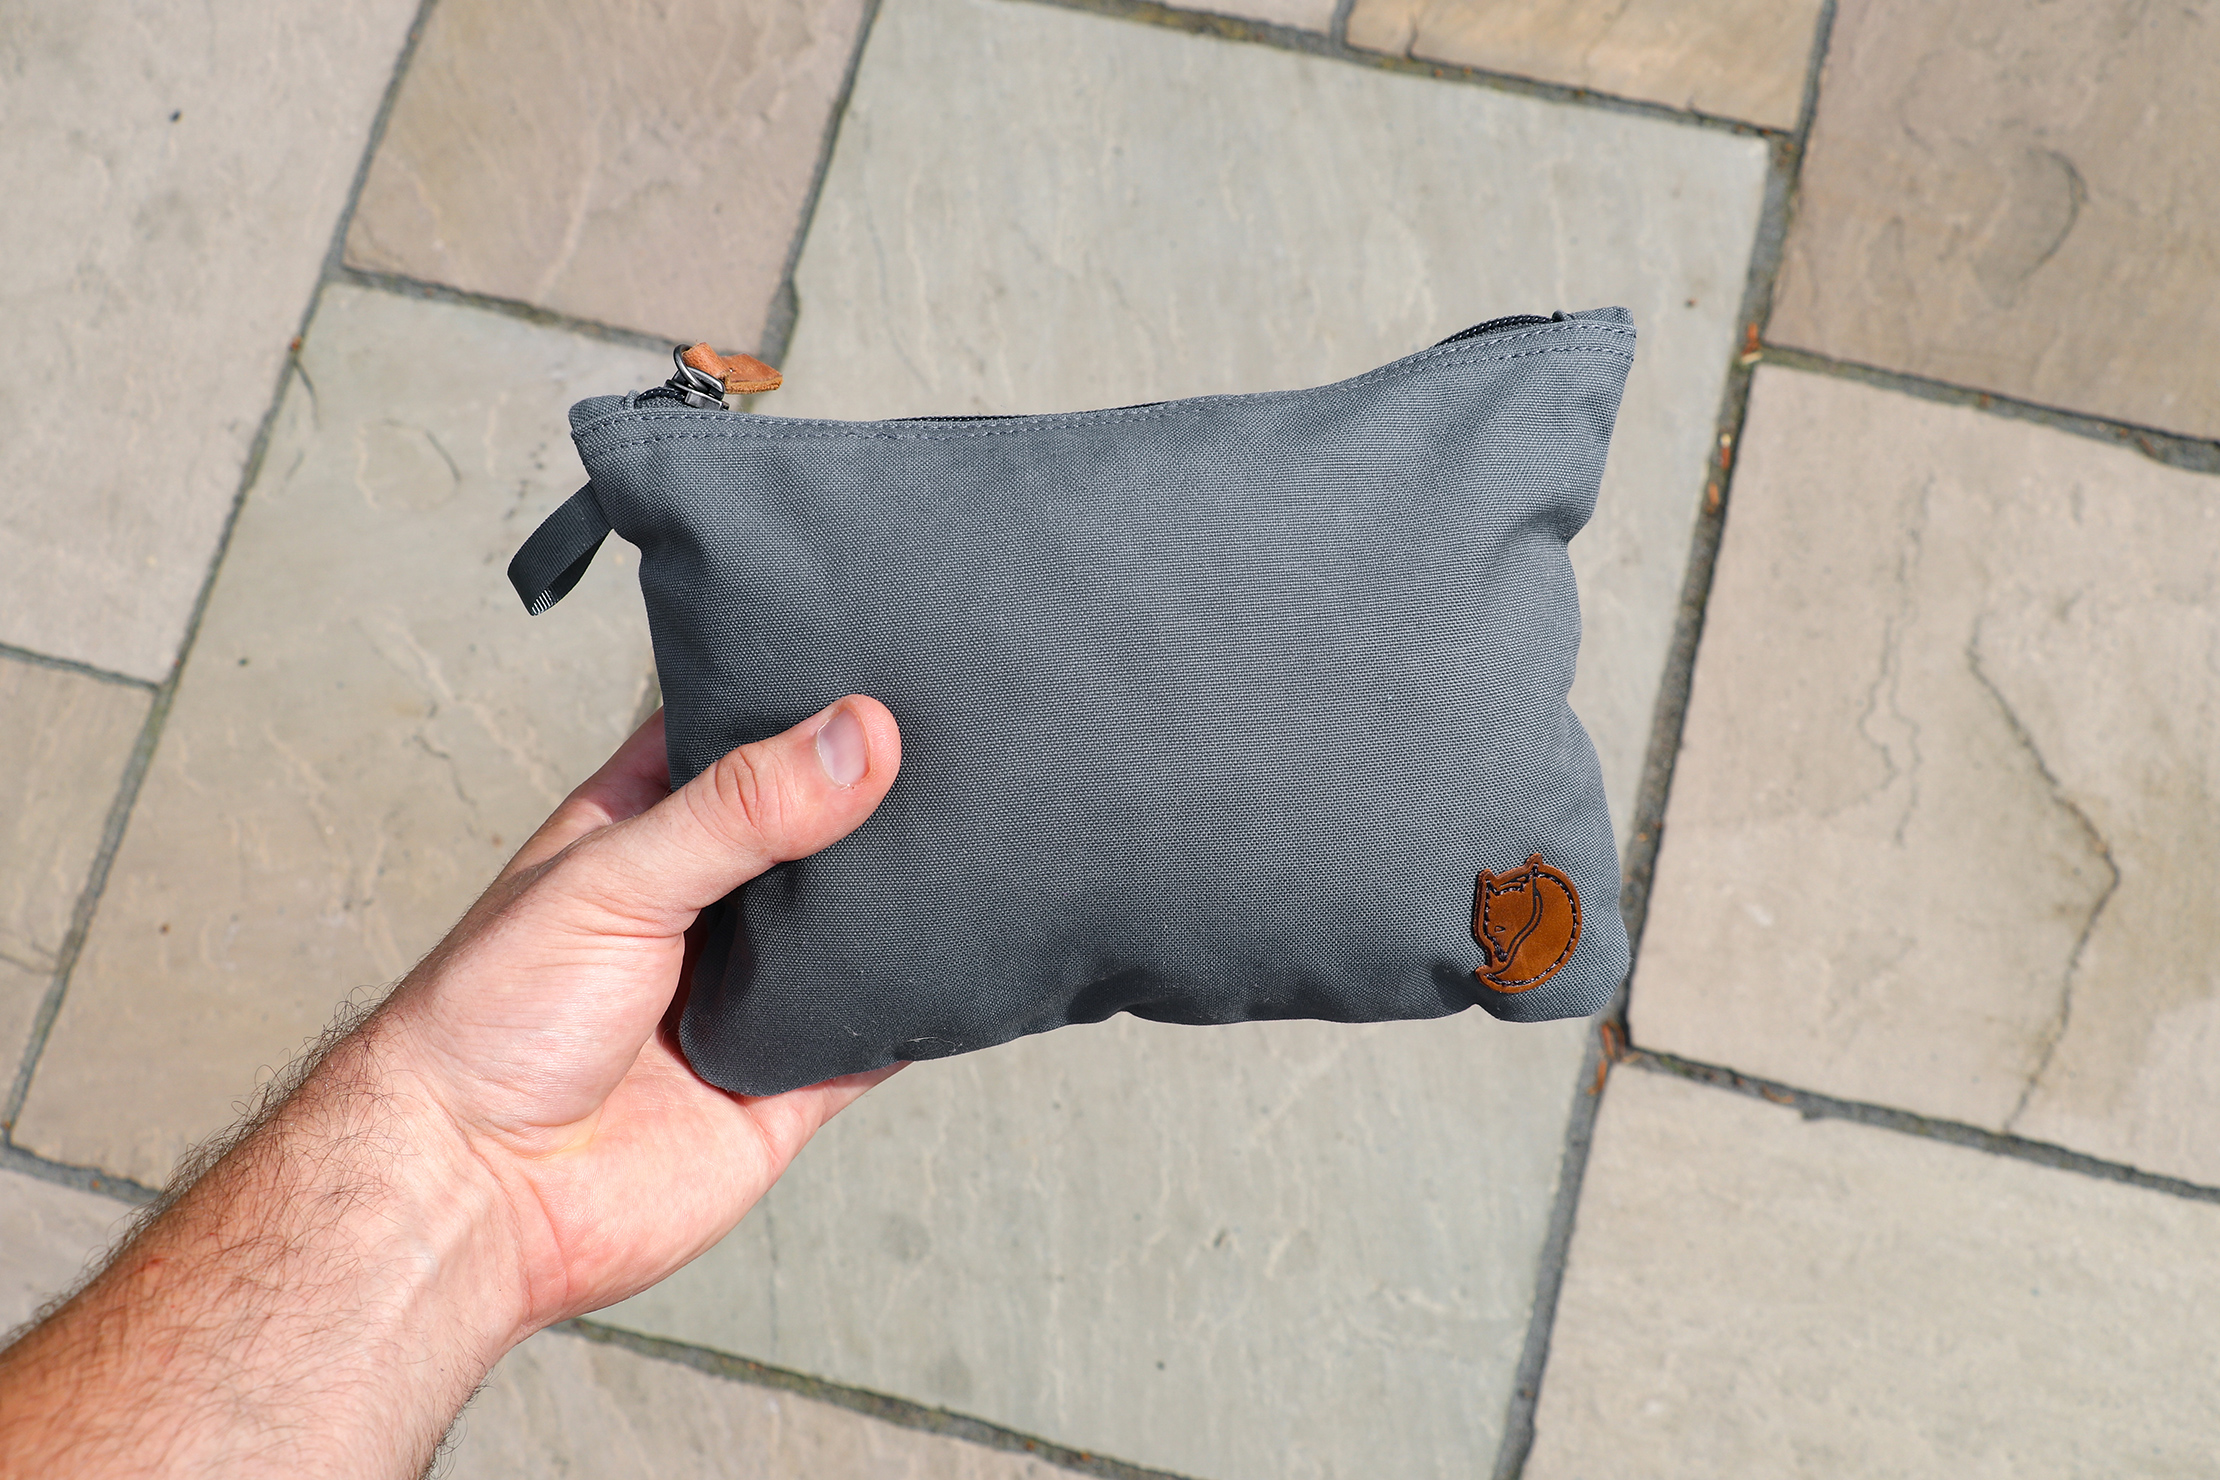 Fjallraven Gear Pocket In Essex England